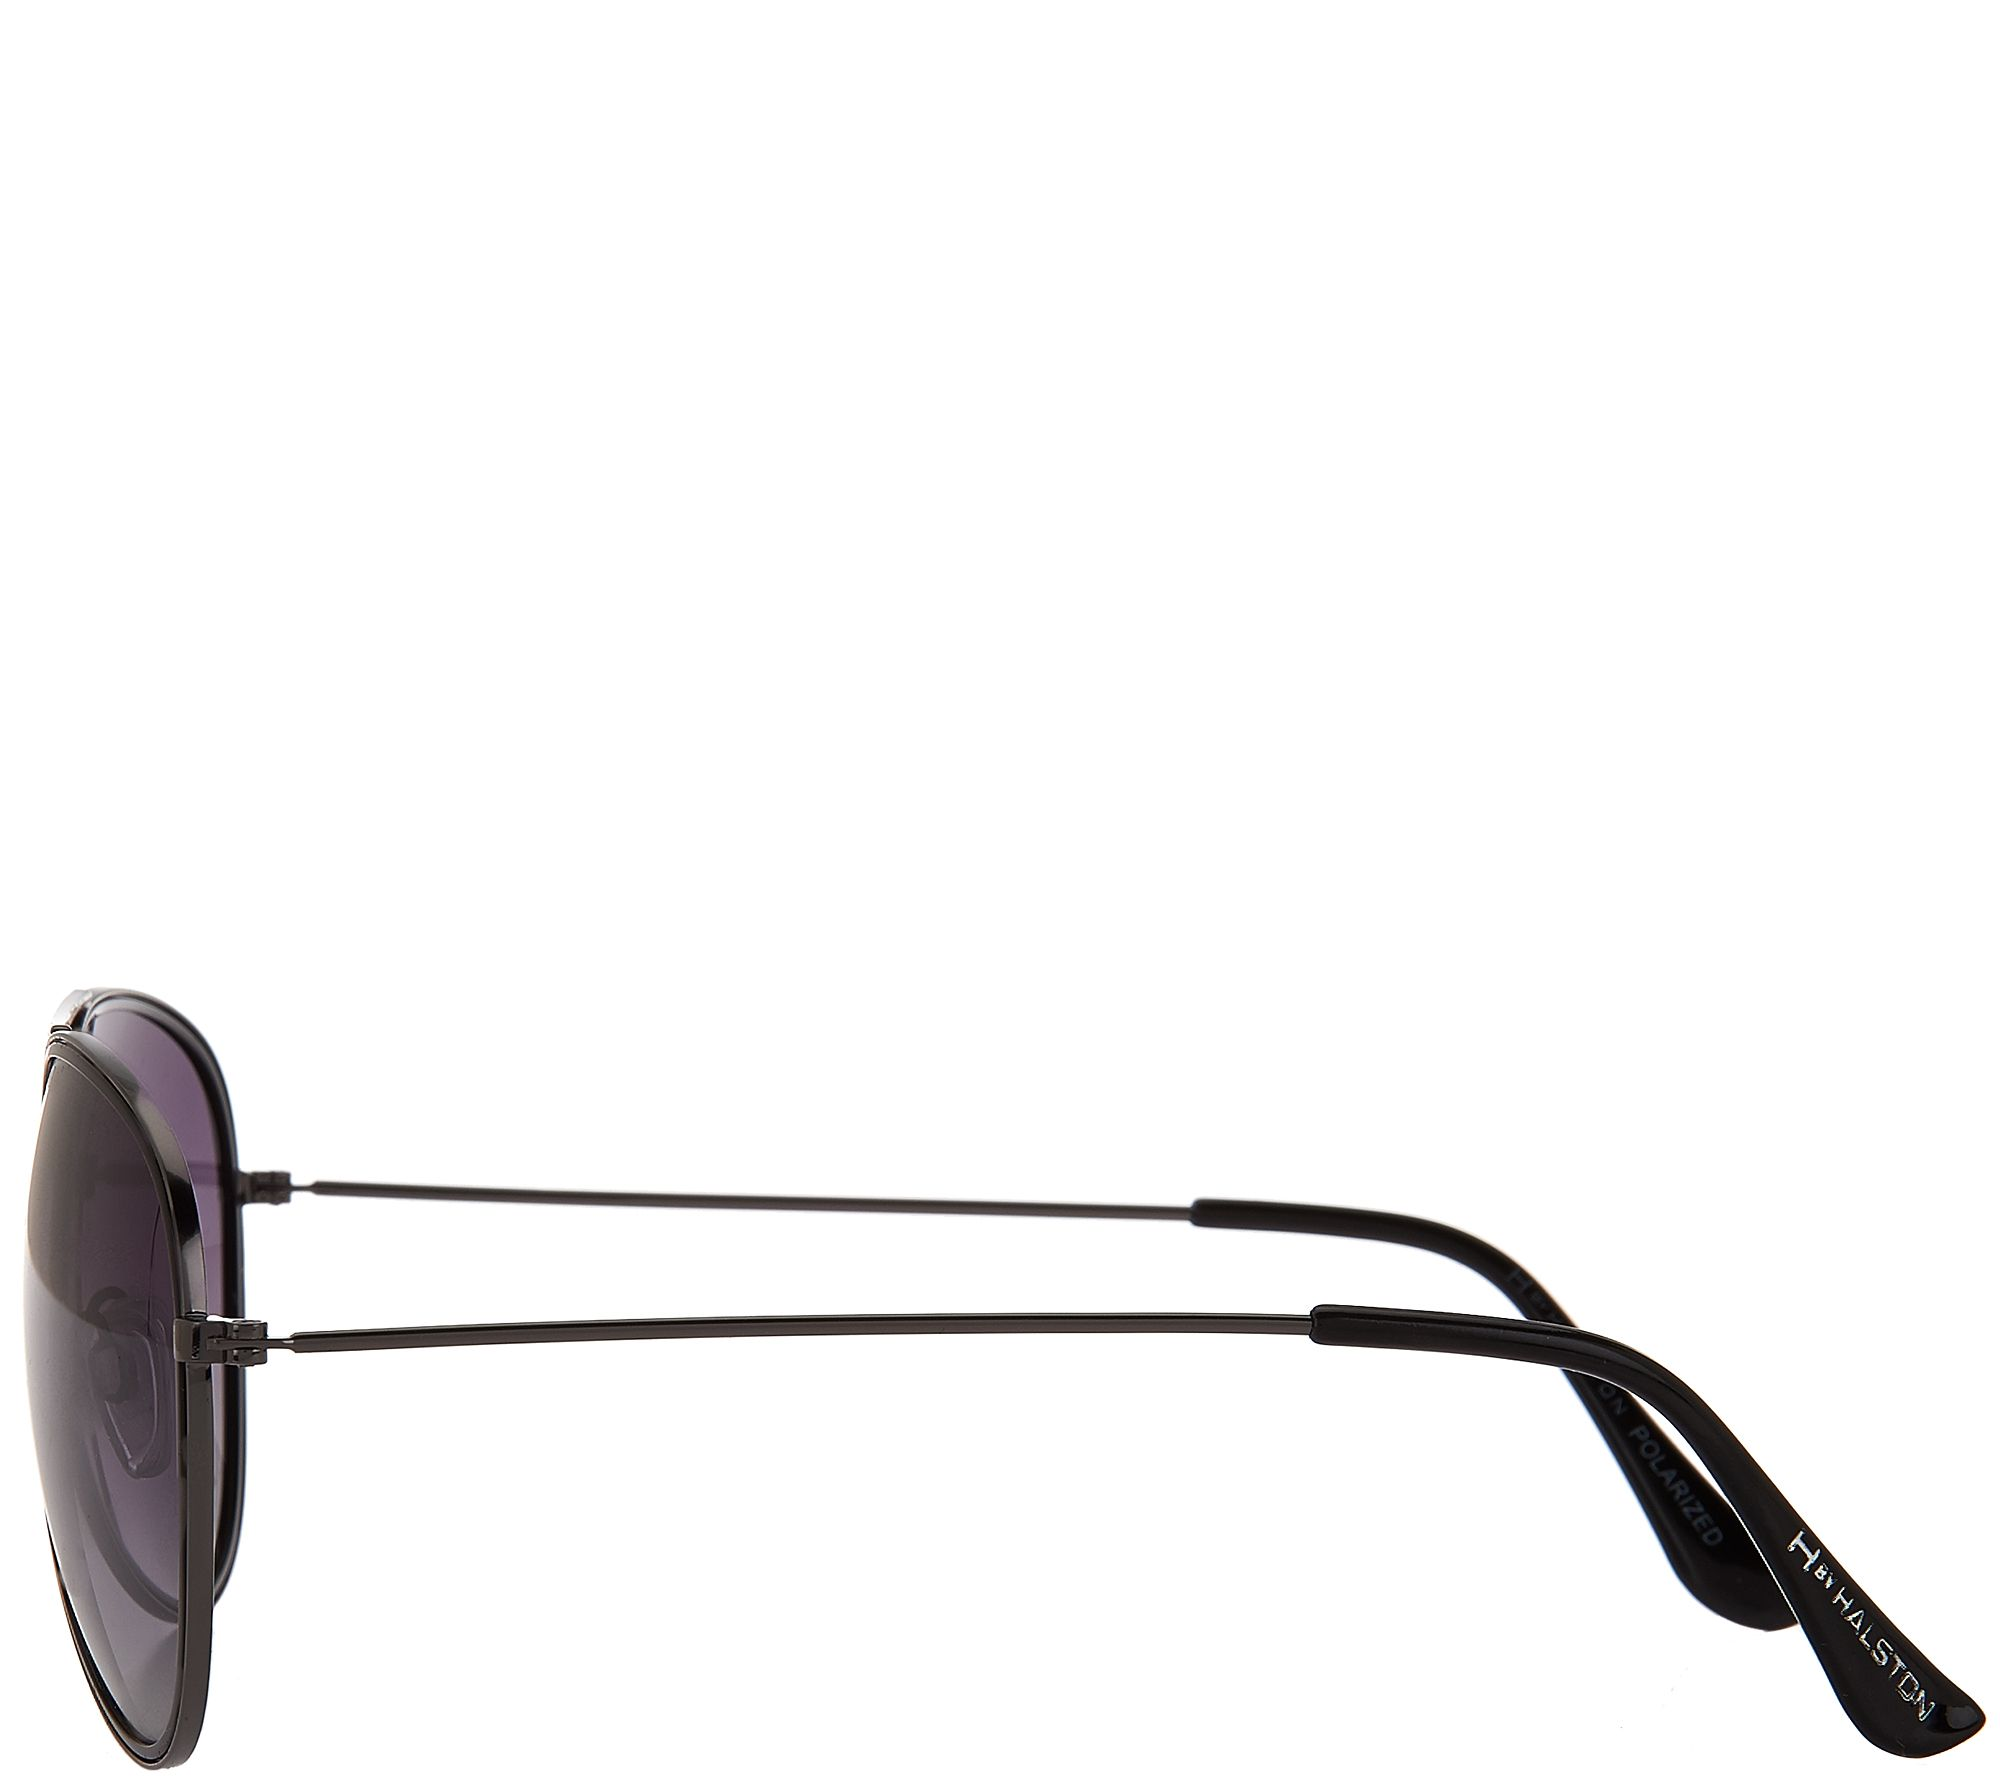 4fba5bfd19d H by Halston Polarized Aviator Sunglasses w  Two Tone Frame - Page 1 —  QVC.com